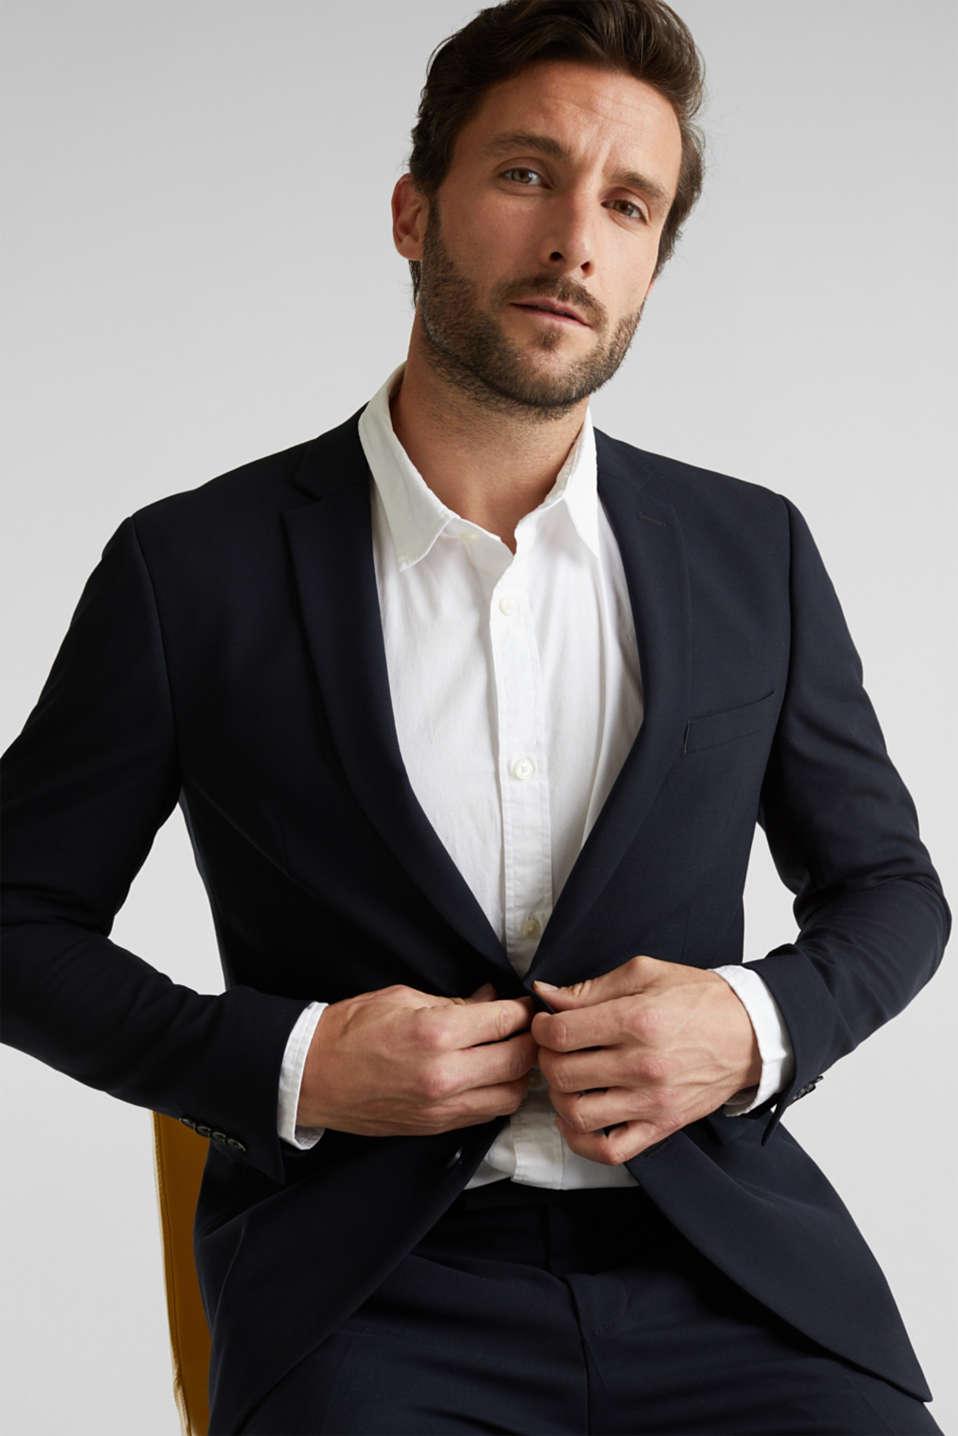 ACTIVE SUIT tailored jacket, wool blend, DARK BLUE, detail image number 5